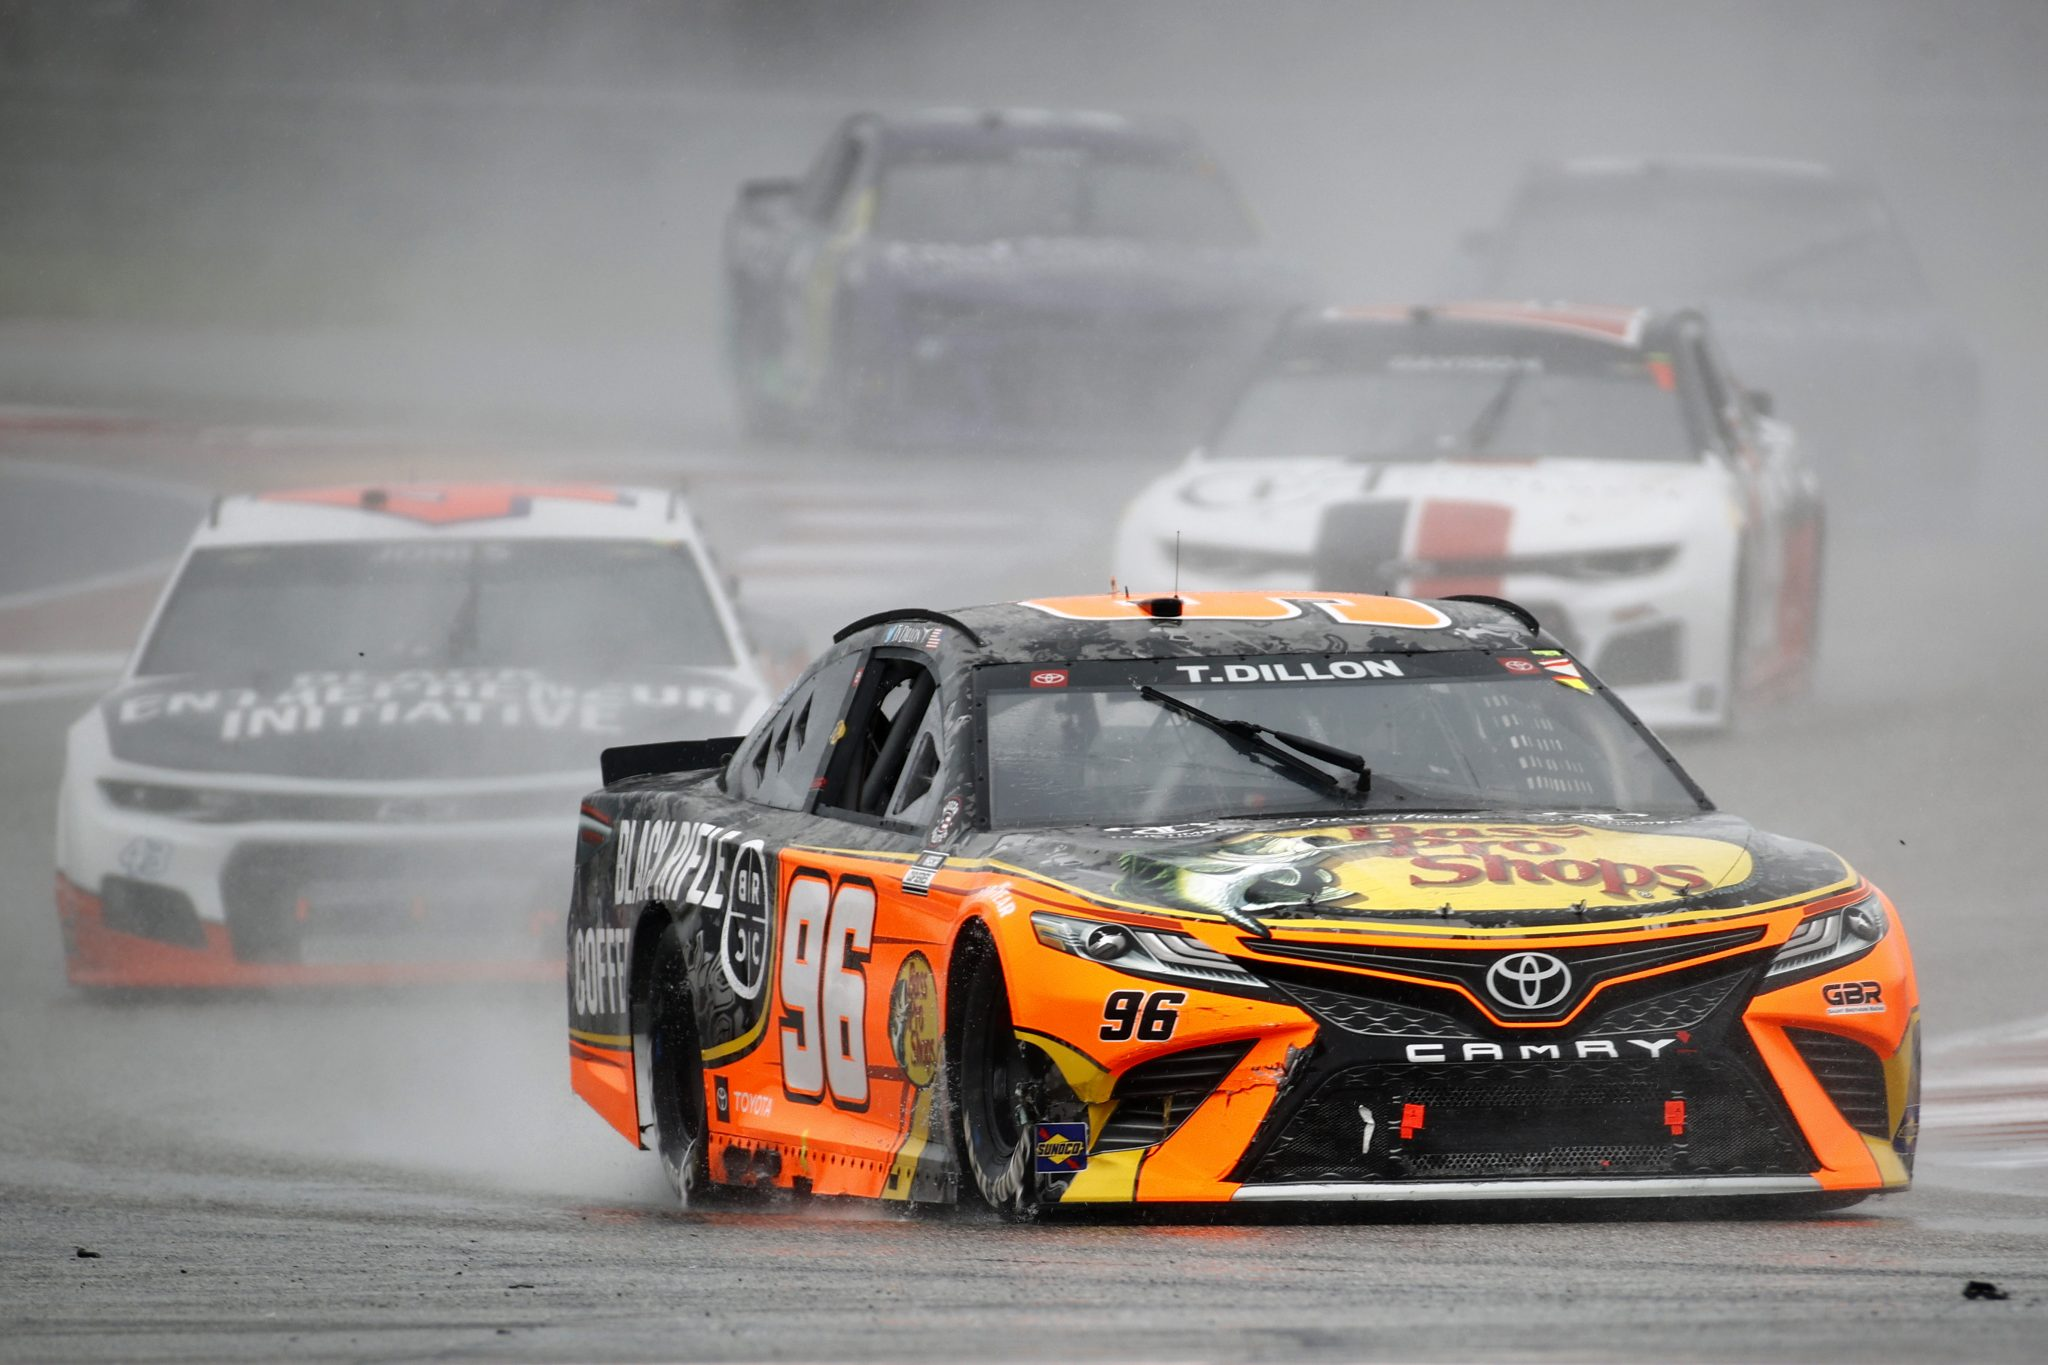 AUSTIN, TEXAS - MAY 23: Ty Dillon, driver of the #96 Bass Pro Shops/Black Rifle Coffee Toyota, drives during the NASCAR Cup Series EchoPark Texas Grand Prix at Circuit of The Americas on May 23, 2021 in Austin, Texas. (Photo by Jared C. Tilton/Getty Images)   Getty Images